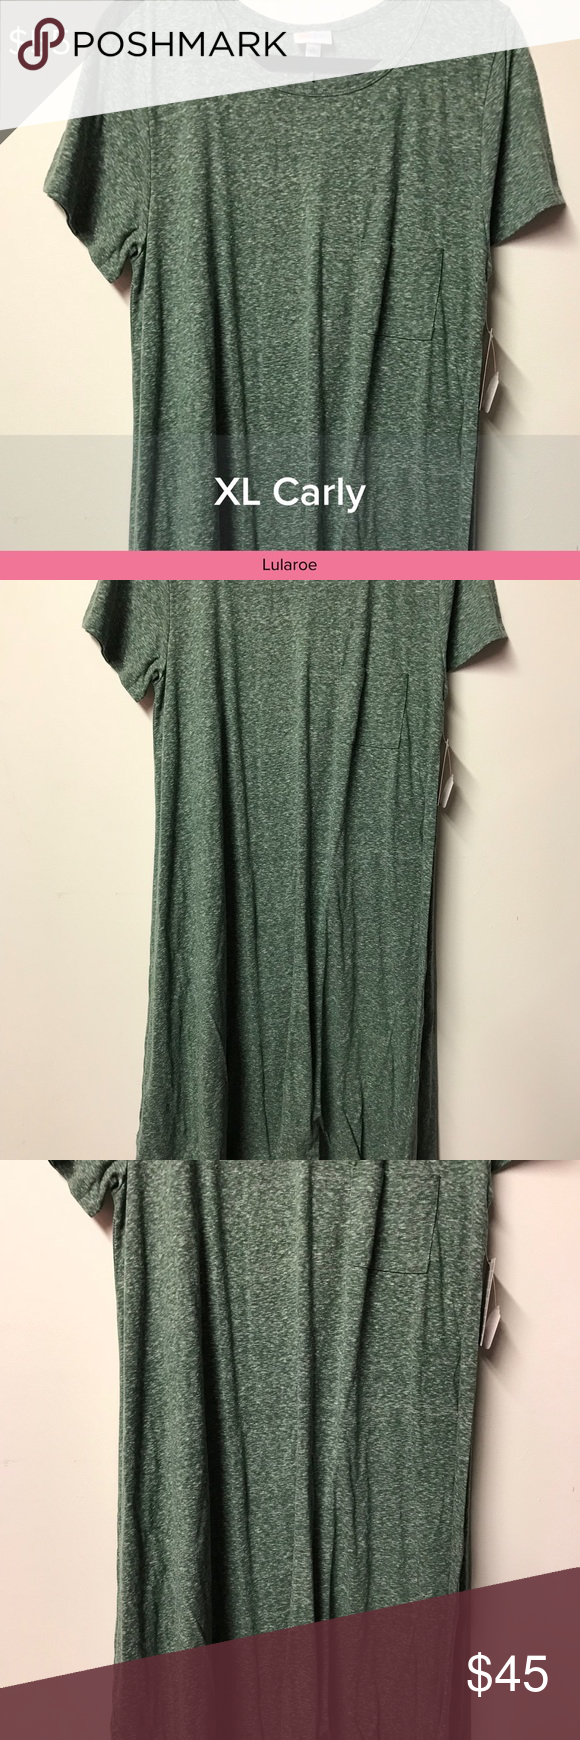 NWT Lularoe Carly Dress XL Green White All of my items in both my Closet and Boutique come from a smoke free and pet free environment. Pre-owned items are only owned by one owner which is me. All items listed as EUC mean they have been worn once or twice and laundered by the instructions per each garment. I love to shop and have lots of kids but they can't wear everything before they grow out of it! 😊 LuLaRoe Dresses